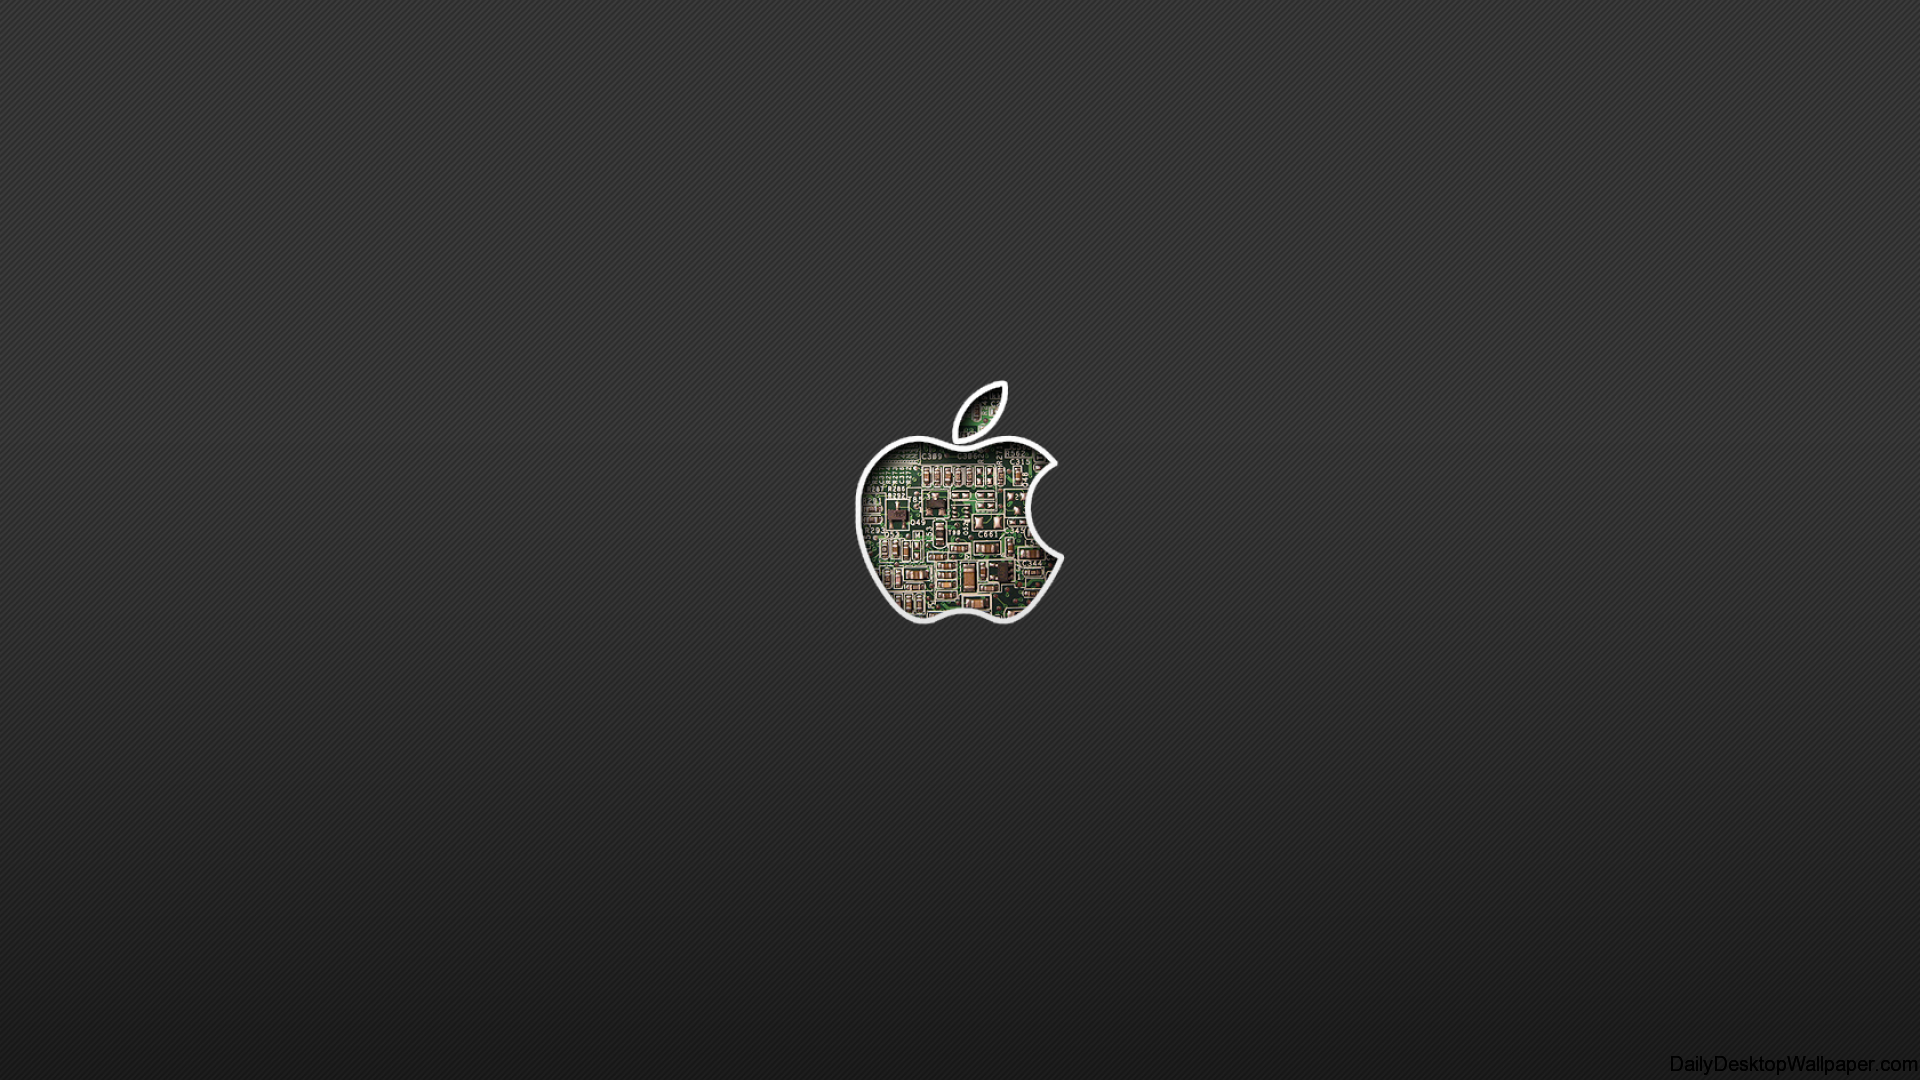 Internal hardware apple logo